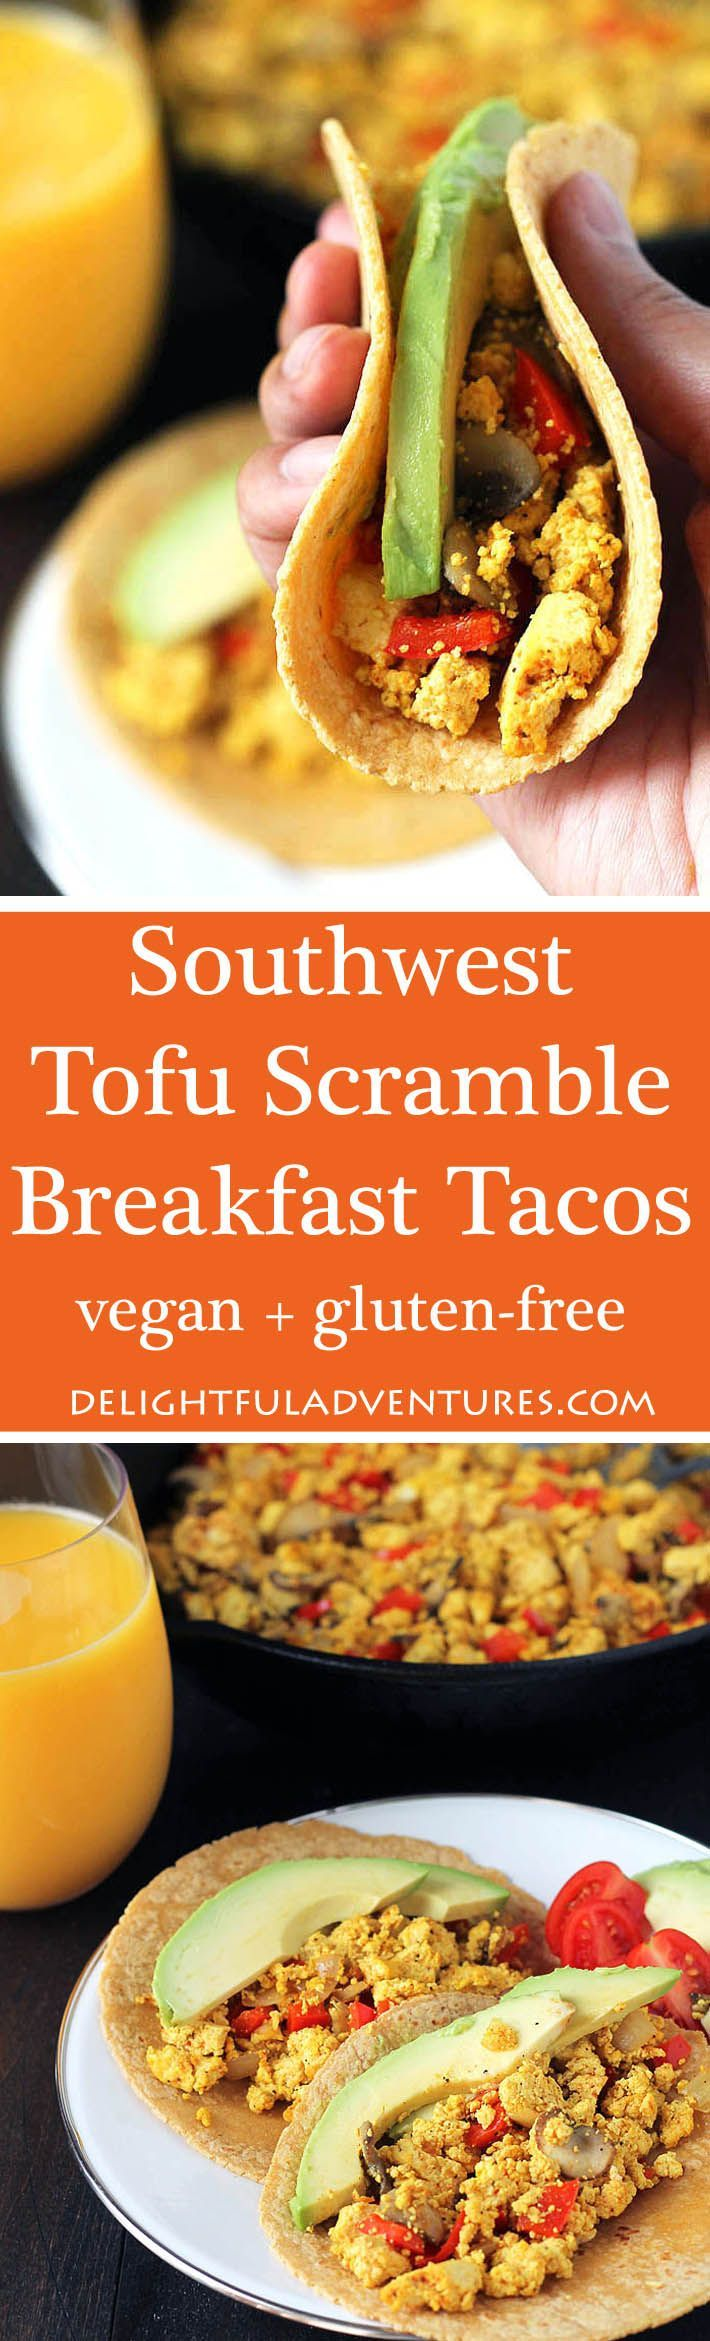 Make something different for breakfast by trying out these vegan Southwest Tofu Scramble Breakfast Tacos filled with veggies and spicy flavour! via @delighfuladv #ad #OrganicMoments